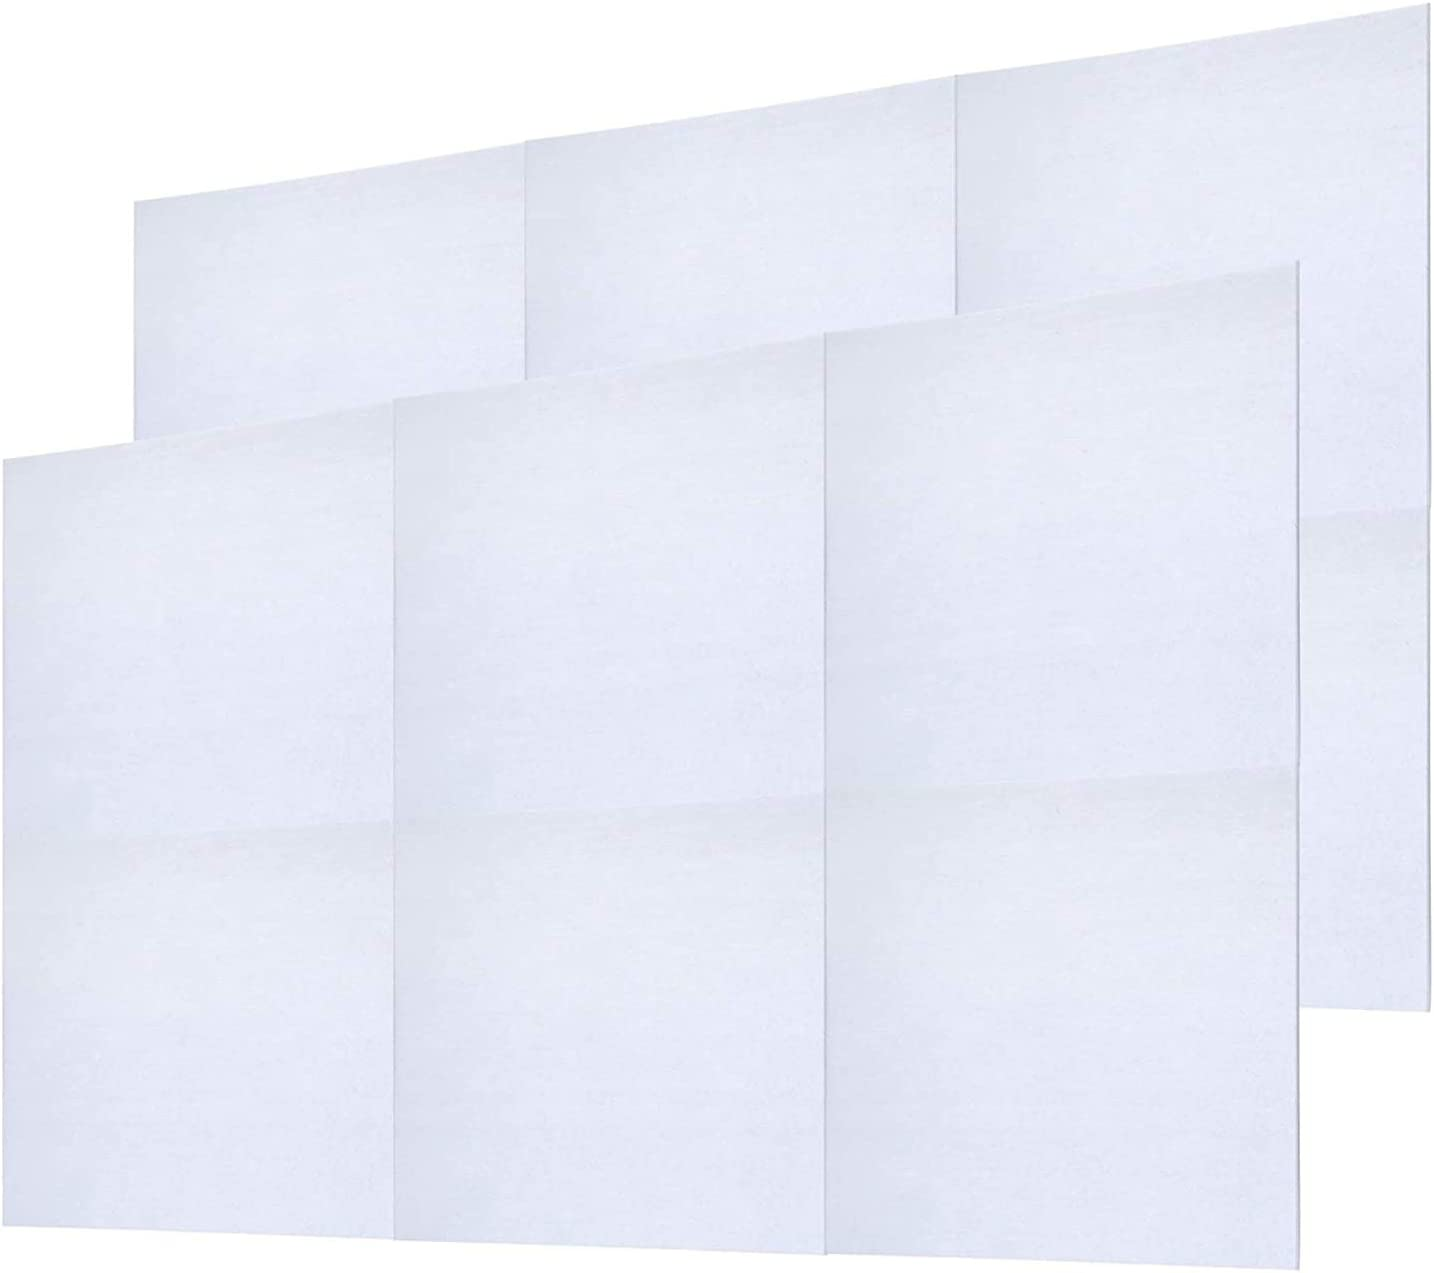 12 Pack Set Acoustic Absorption Panel, 12 X 12 X 0.4 Inches White Acoustic Soundproofing Insulation Panel Tiles, Acoustic Treatment Used in Home & Offices